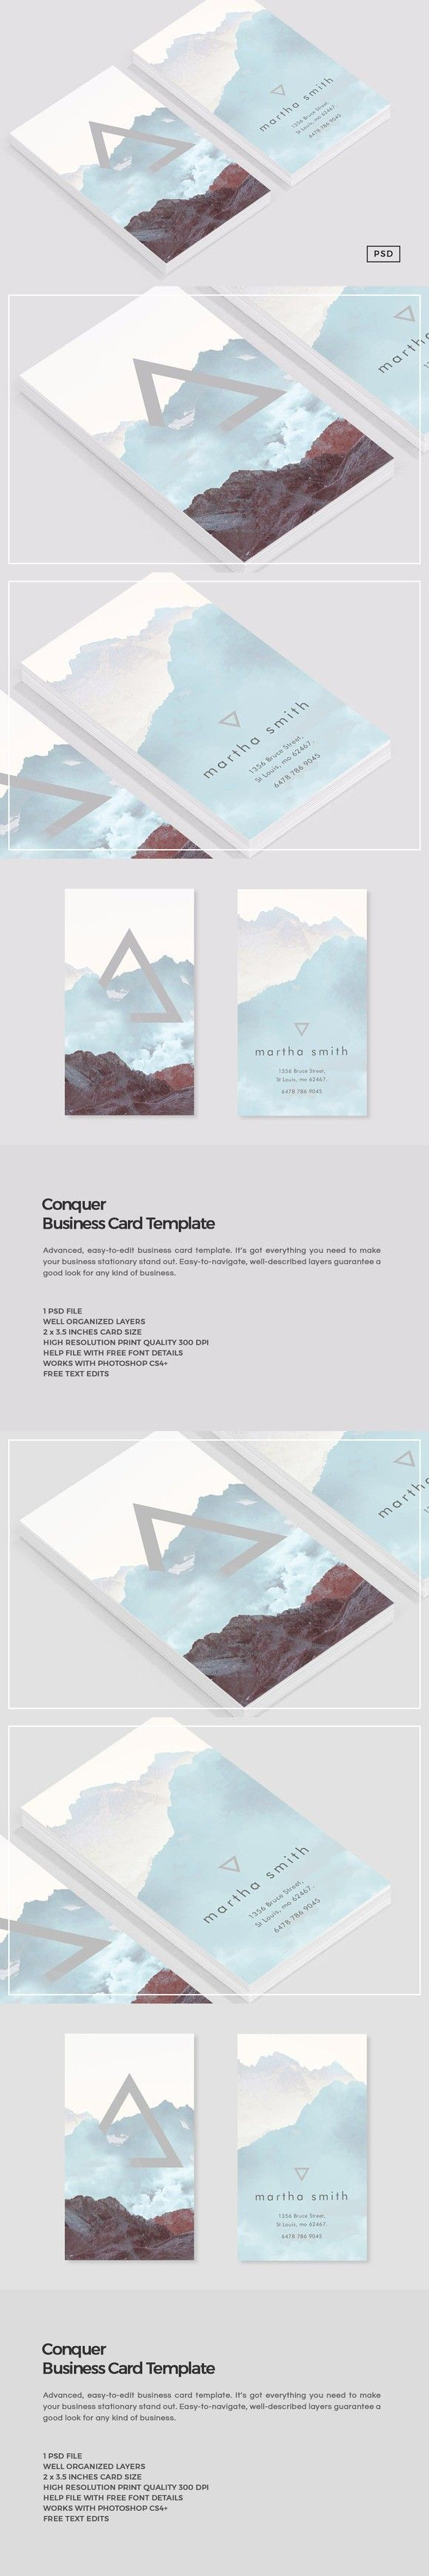 39 best ✏ business card templates images on pinterest